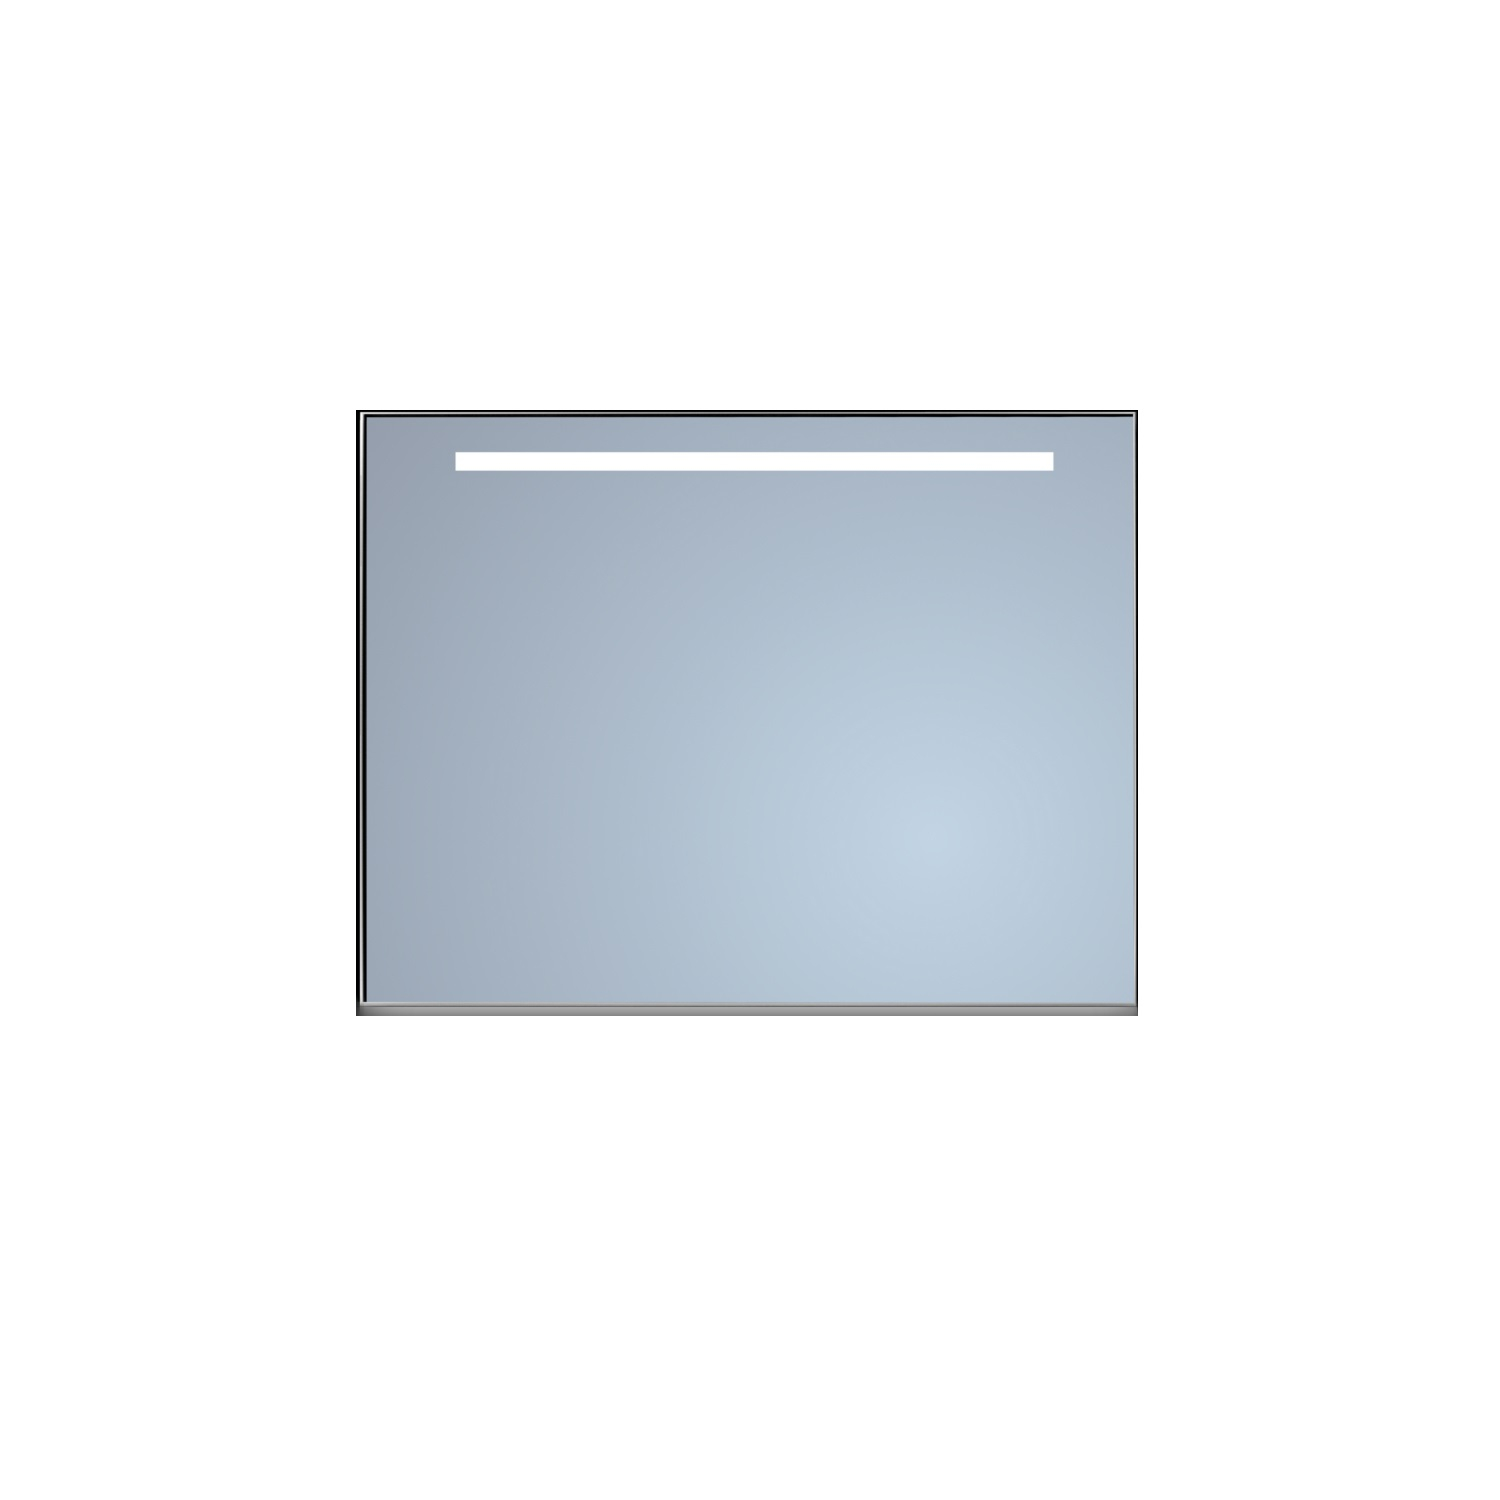 Badkamerspiegel Sanicare Q-Mirrors Ambiance en 'Cold White' LED-verlichting 70x90x3,5 Chroom Omlijsting